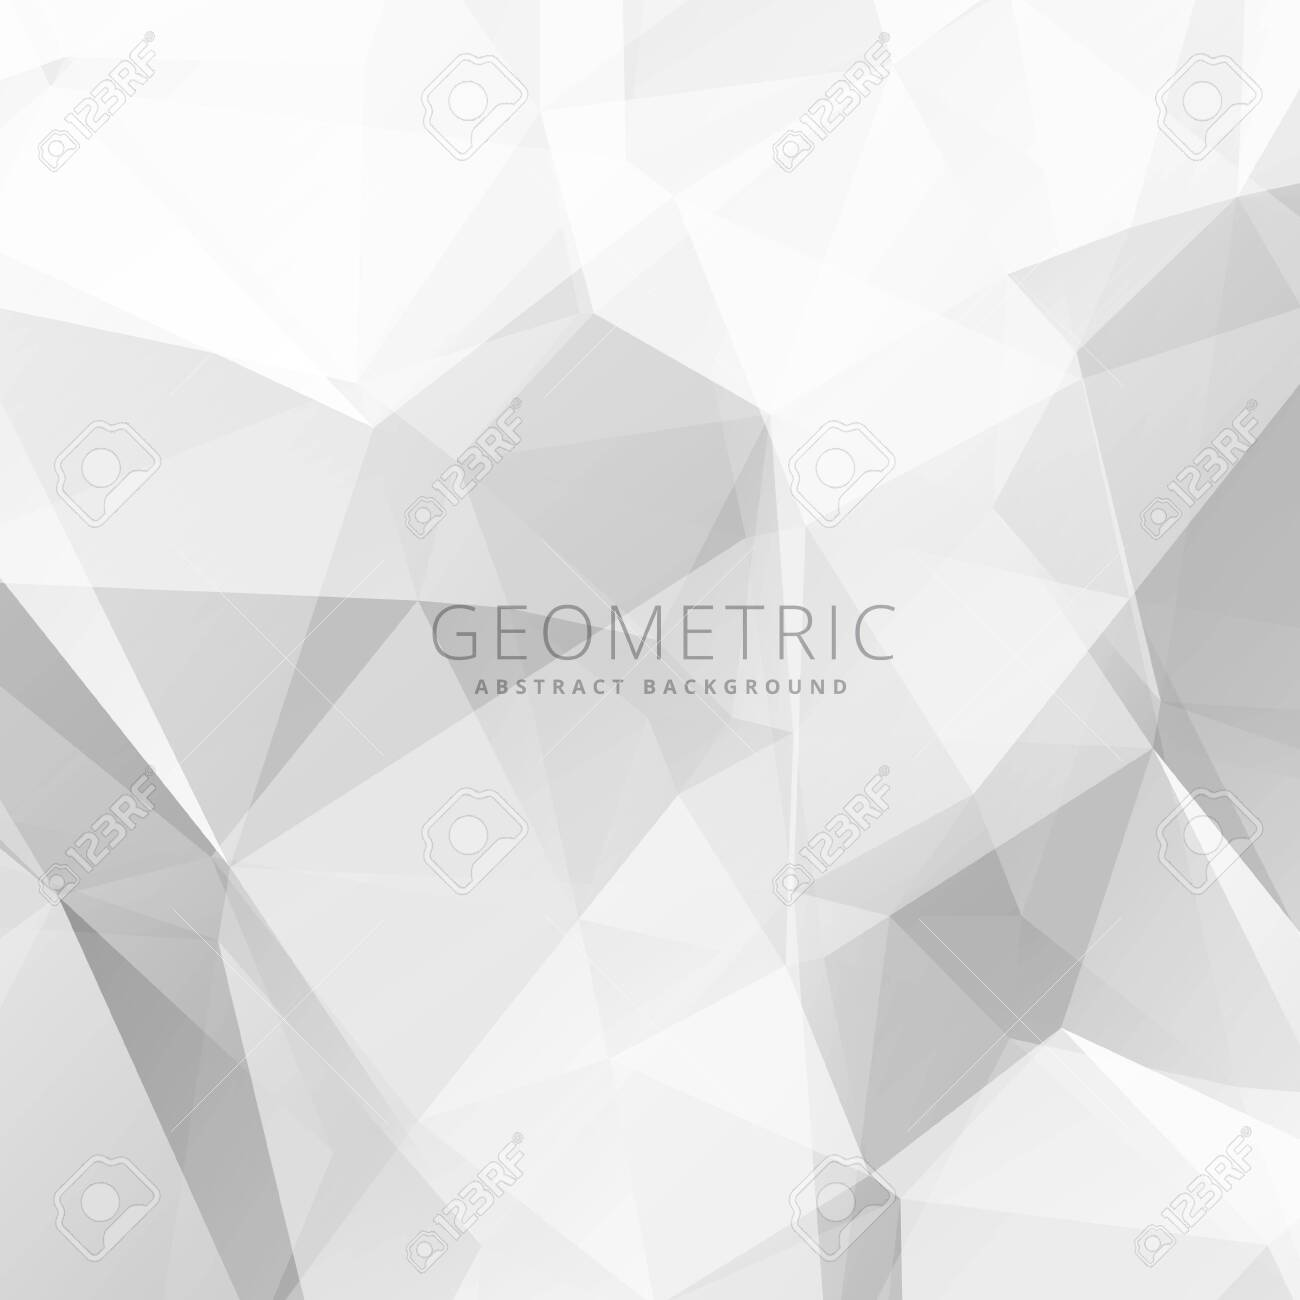 abstract gray white background - 153217534